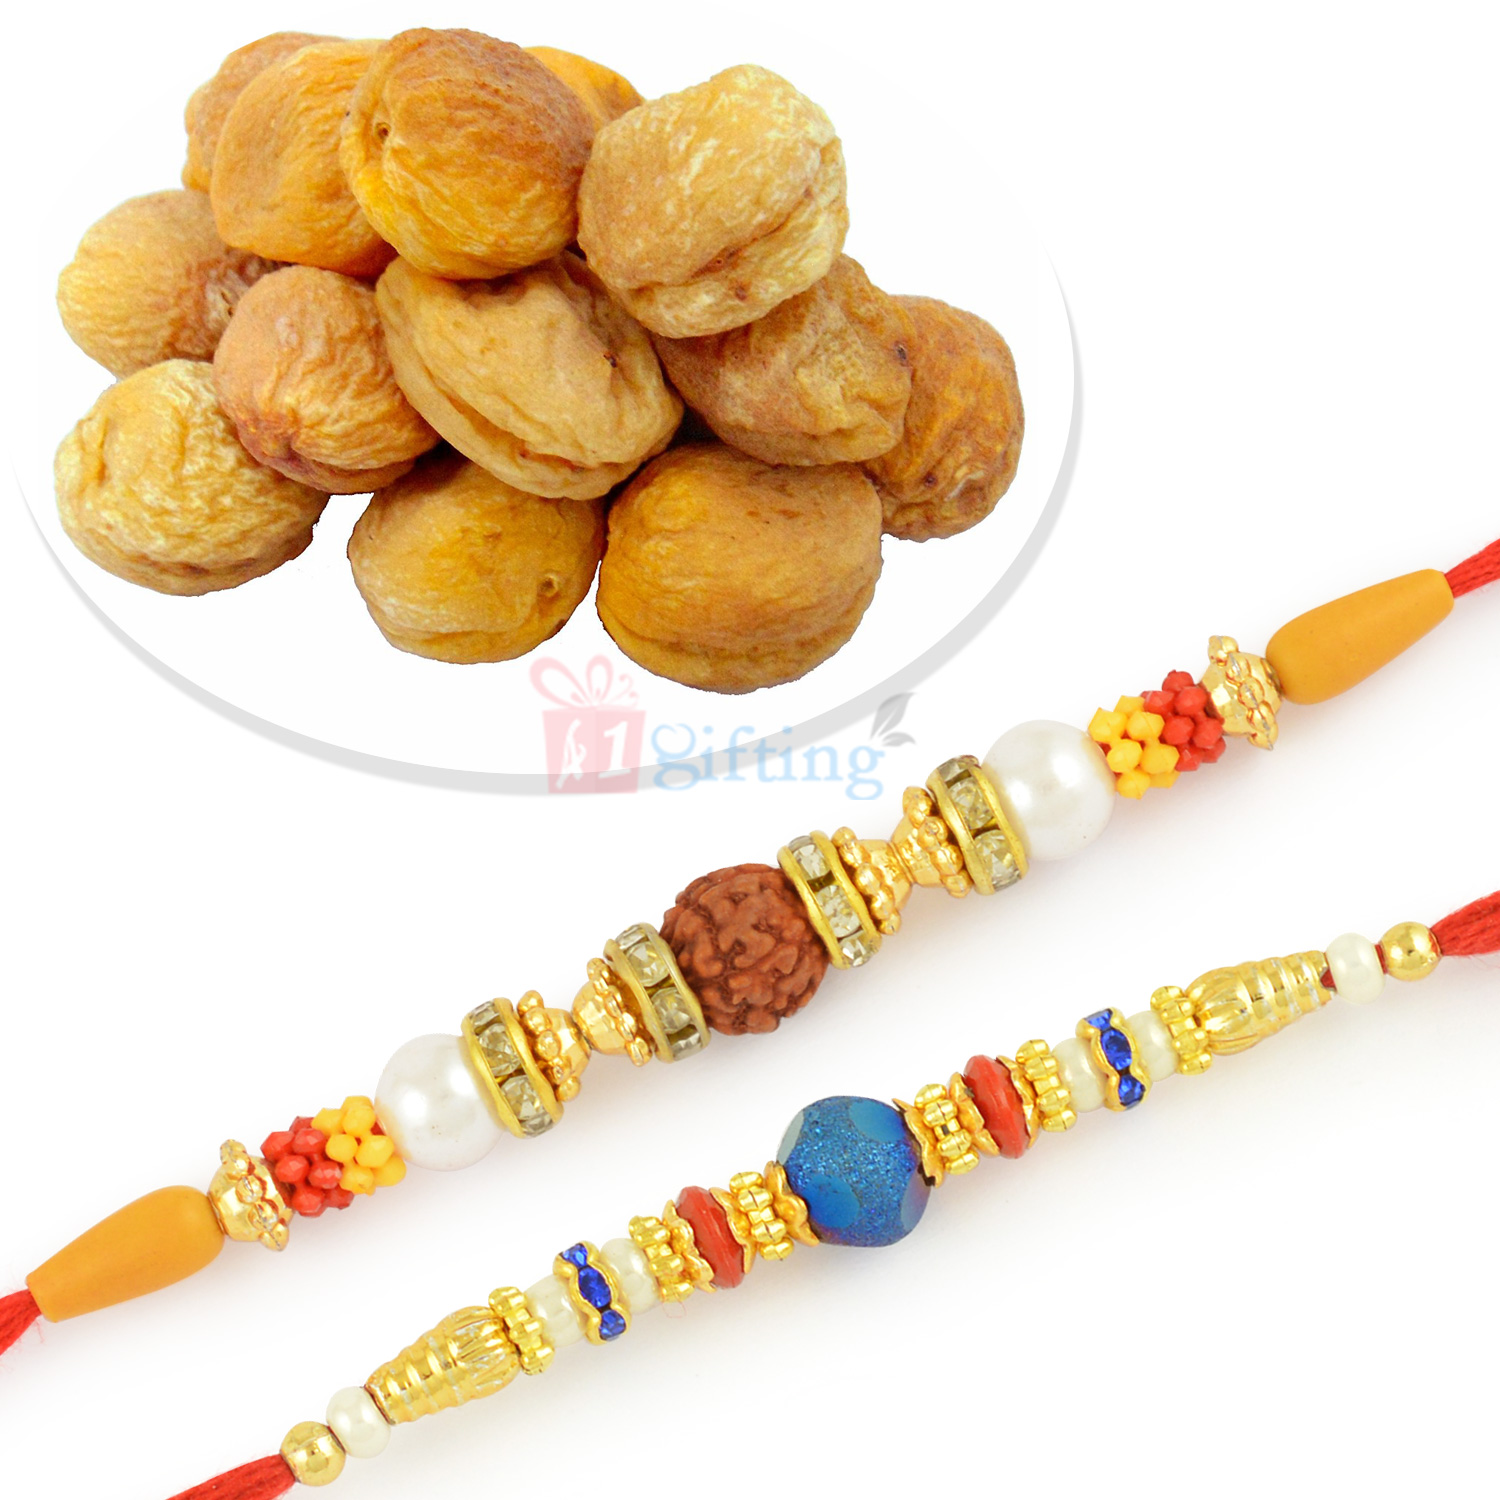 Rudraksha and Beads 2 Rakhi Set with Apricots Dryfruits